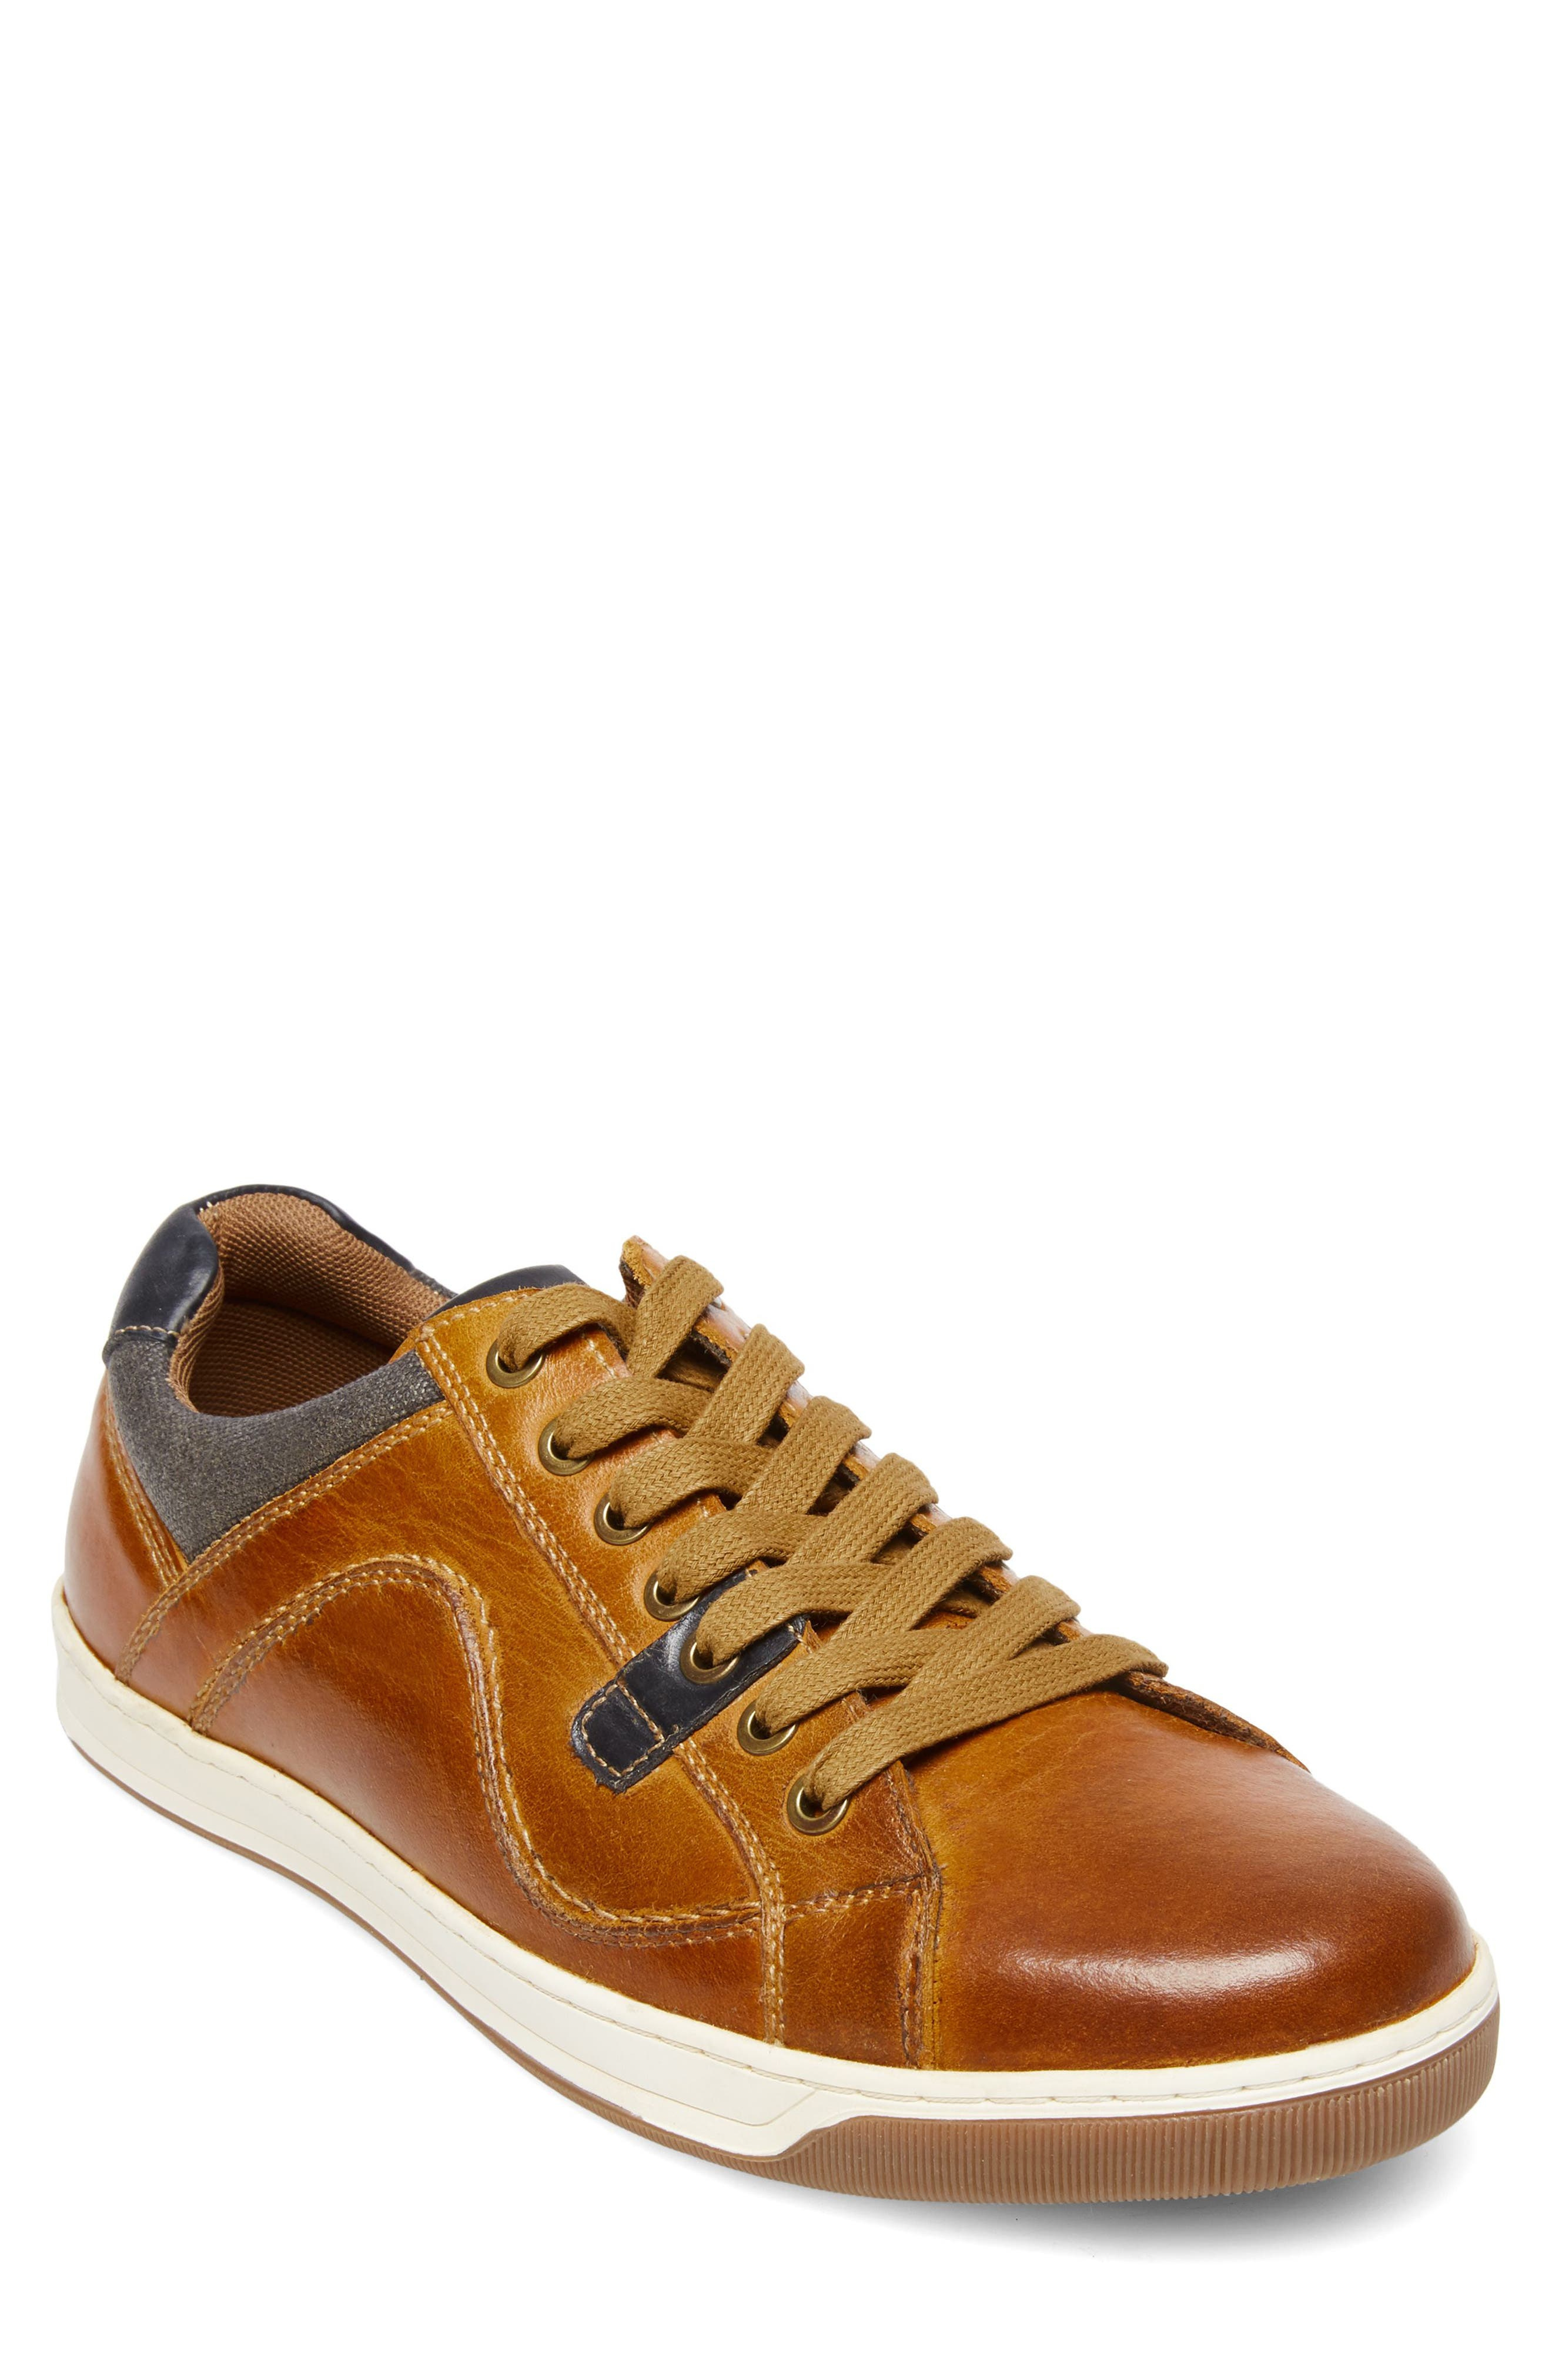 Chater Low Top Sneaker,                         Main,                         color, RUST LEATHER